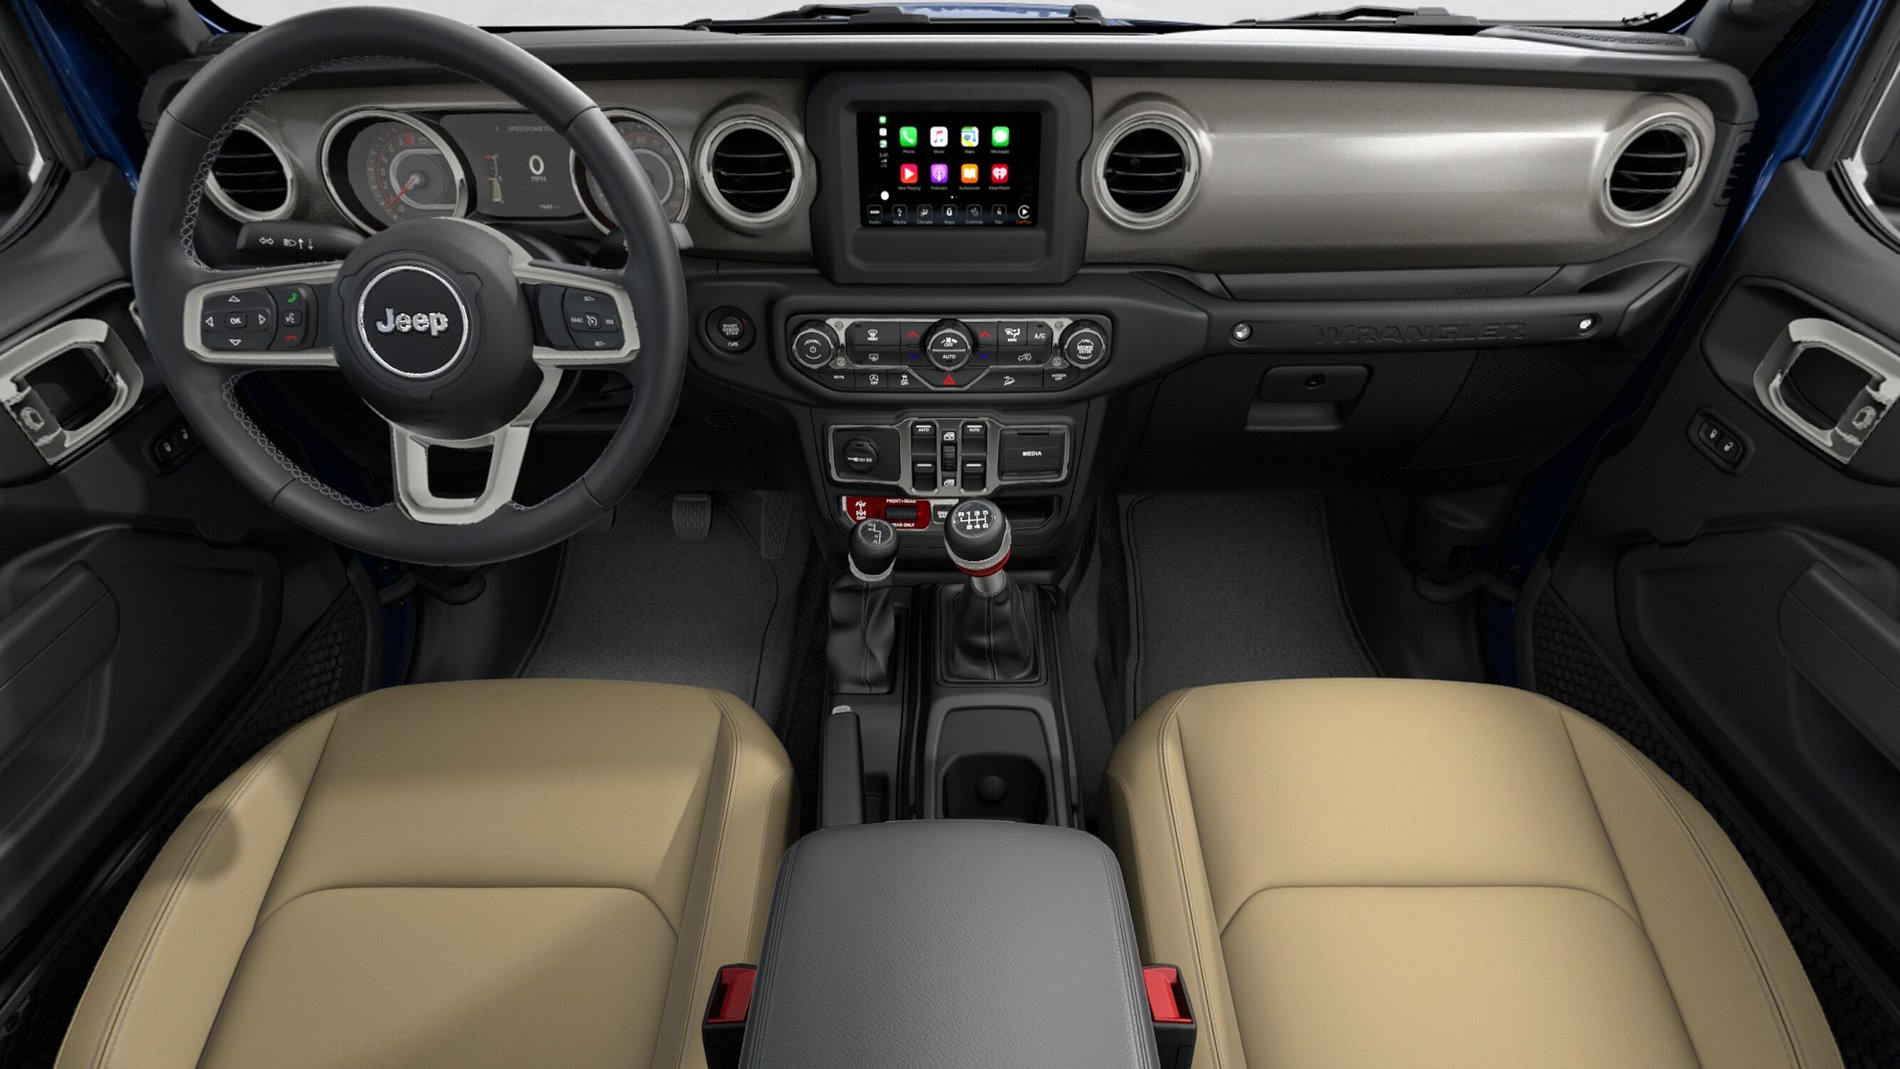 First Look At Saddle Interior In A Rubicon Page 4 Jeep Gladiator Forum Jeepgladiatorforum Com